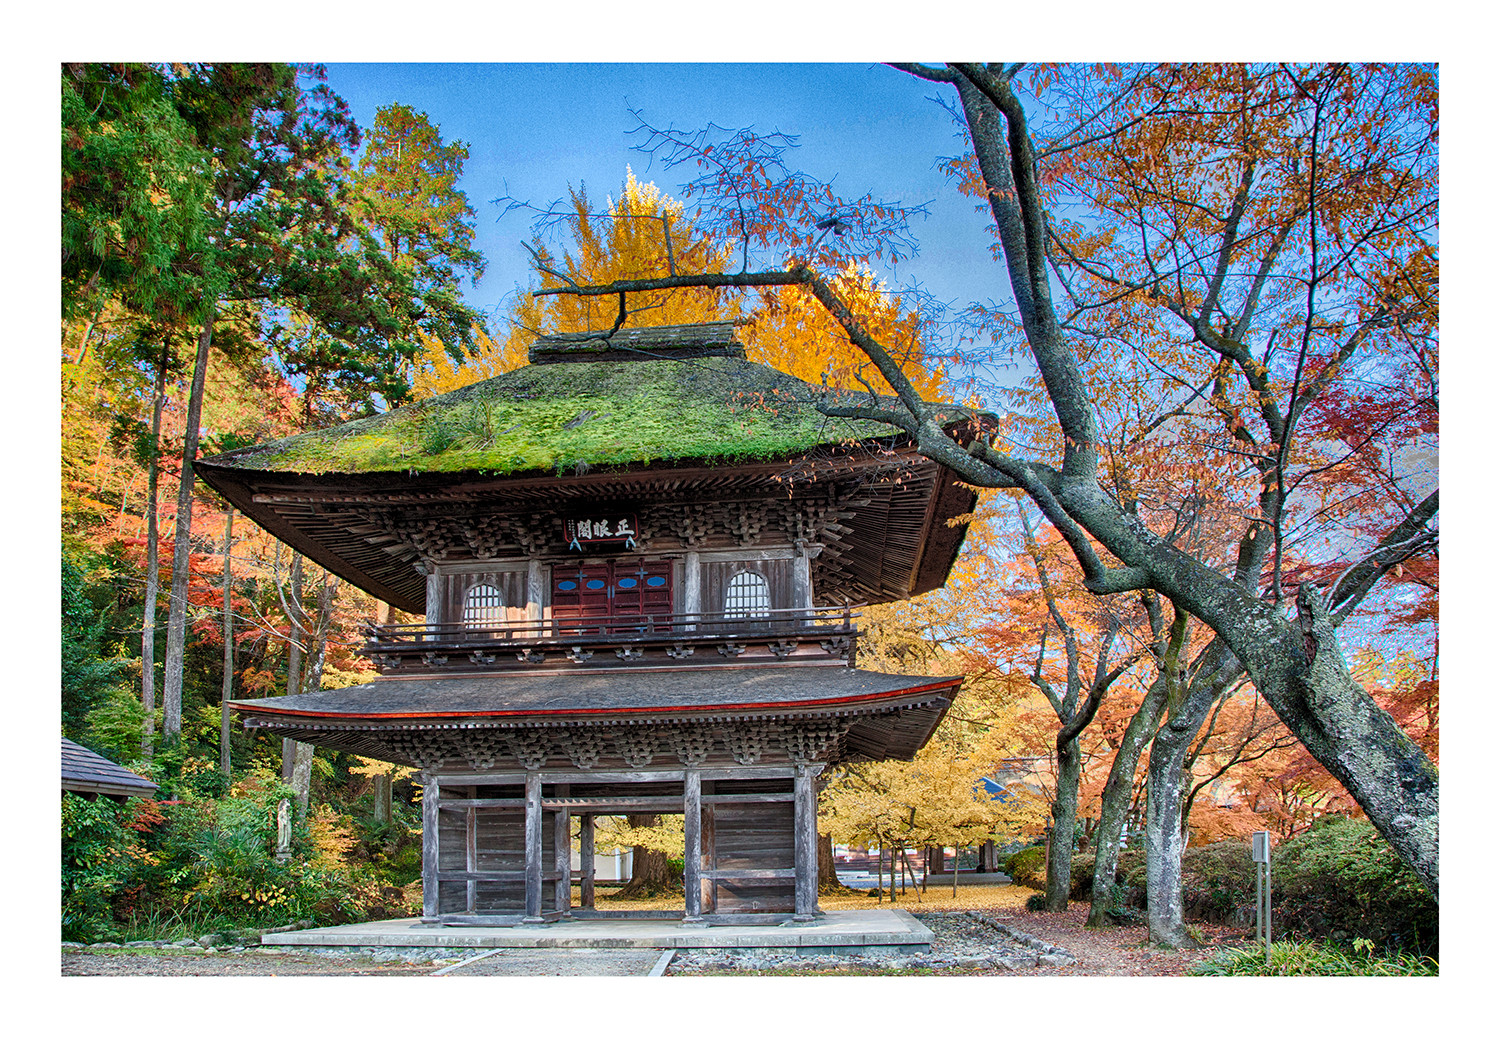 Temple to get in autumn-II